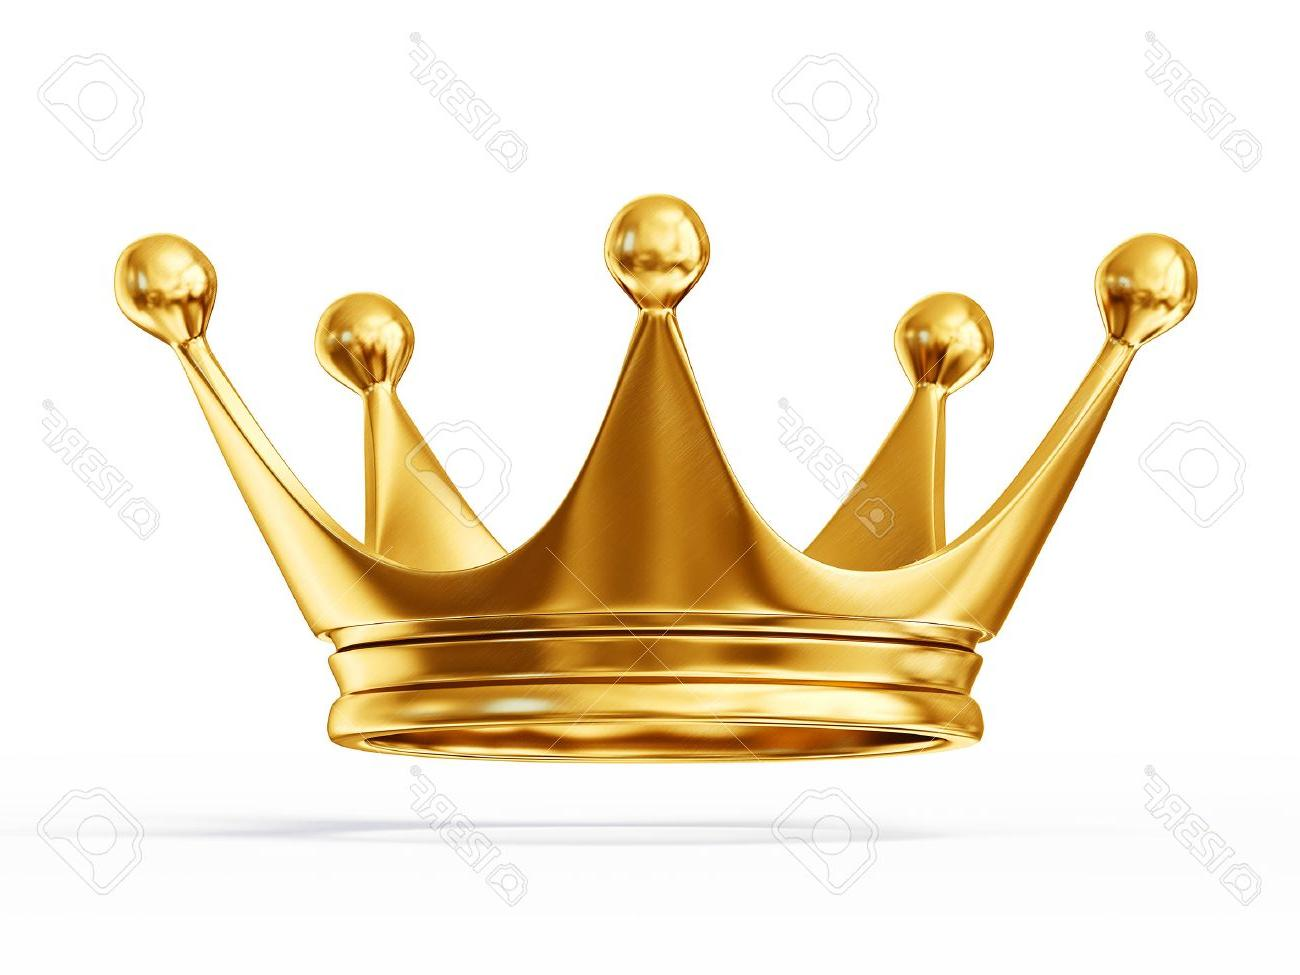 HD Gold King Crown Clip Art Pictures » Free Vector Art, Images.